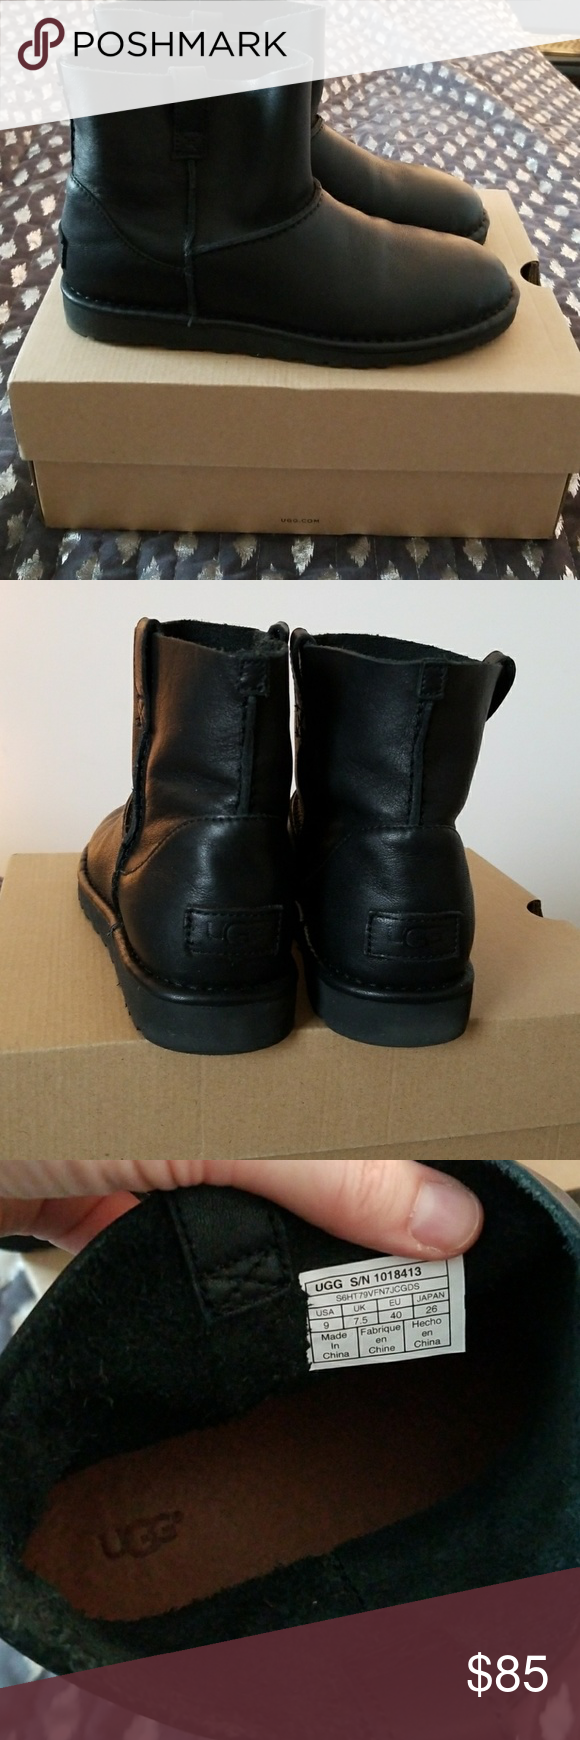 30d86dc62f42 UGG women s classic mini unlined black leather boot size 9. Beautiful!  Lightweight. UGG Shoes Ankle Boots   Booties